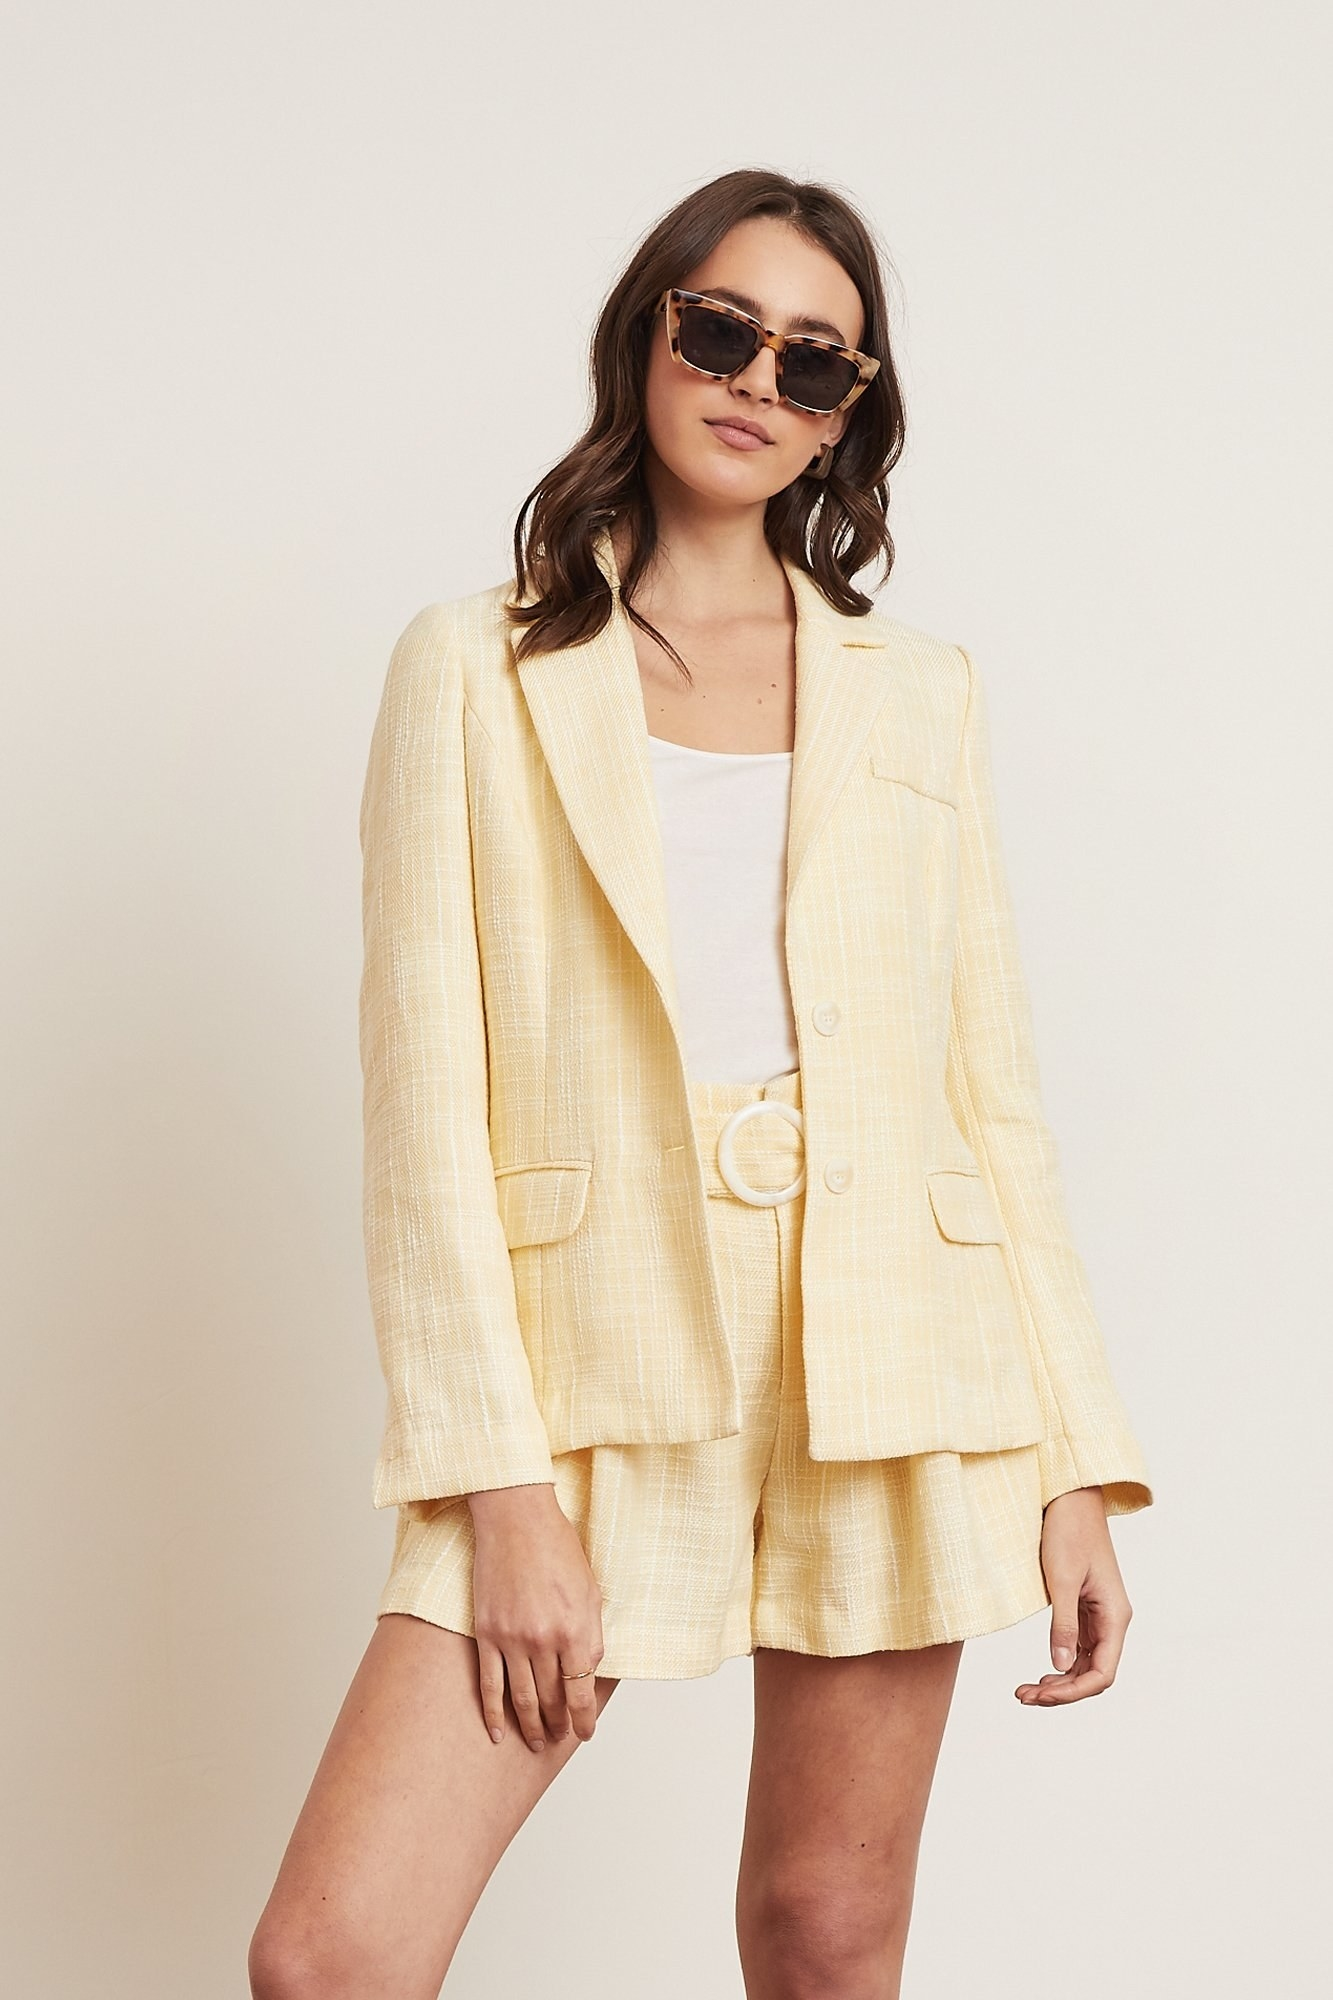 model in the yellow jacket